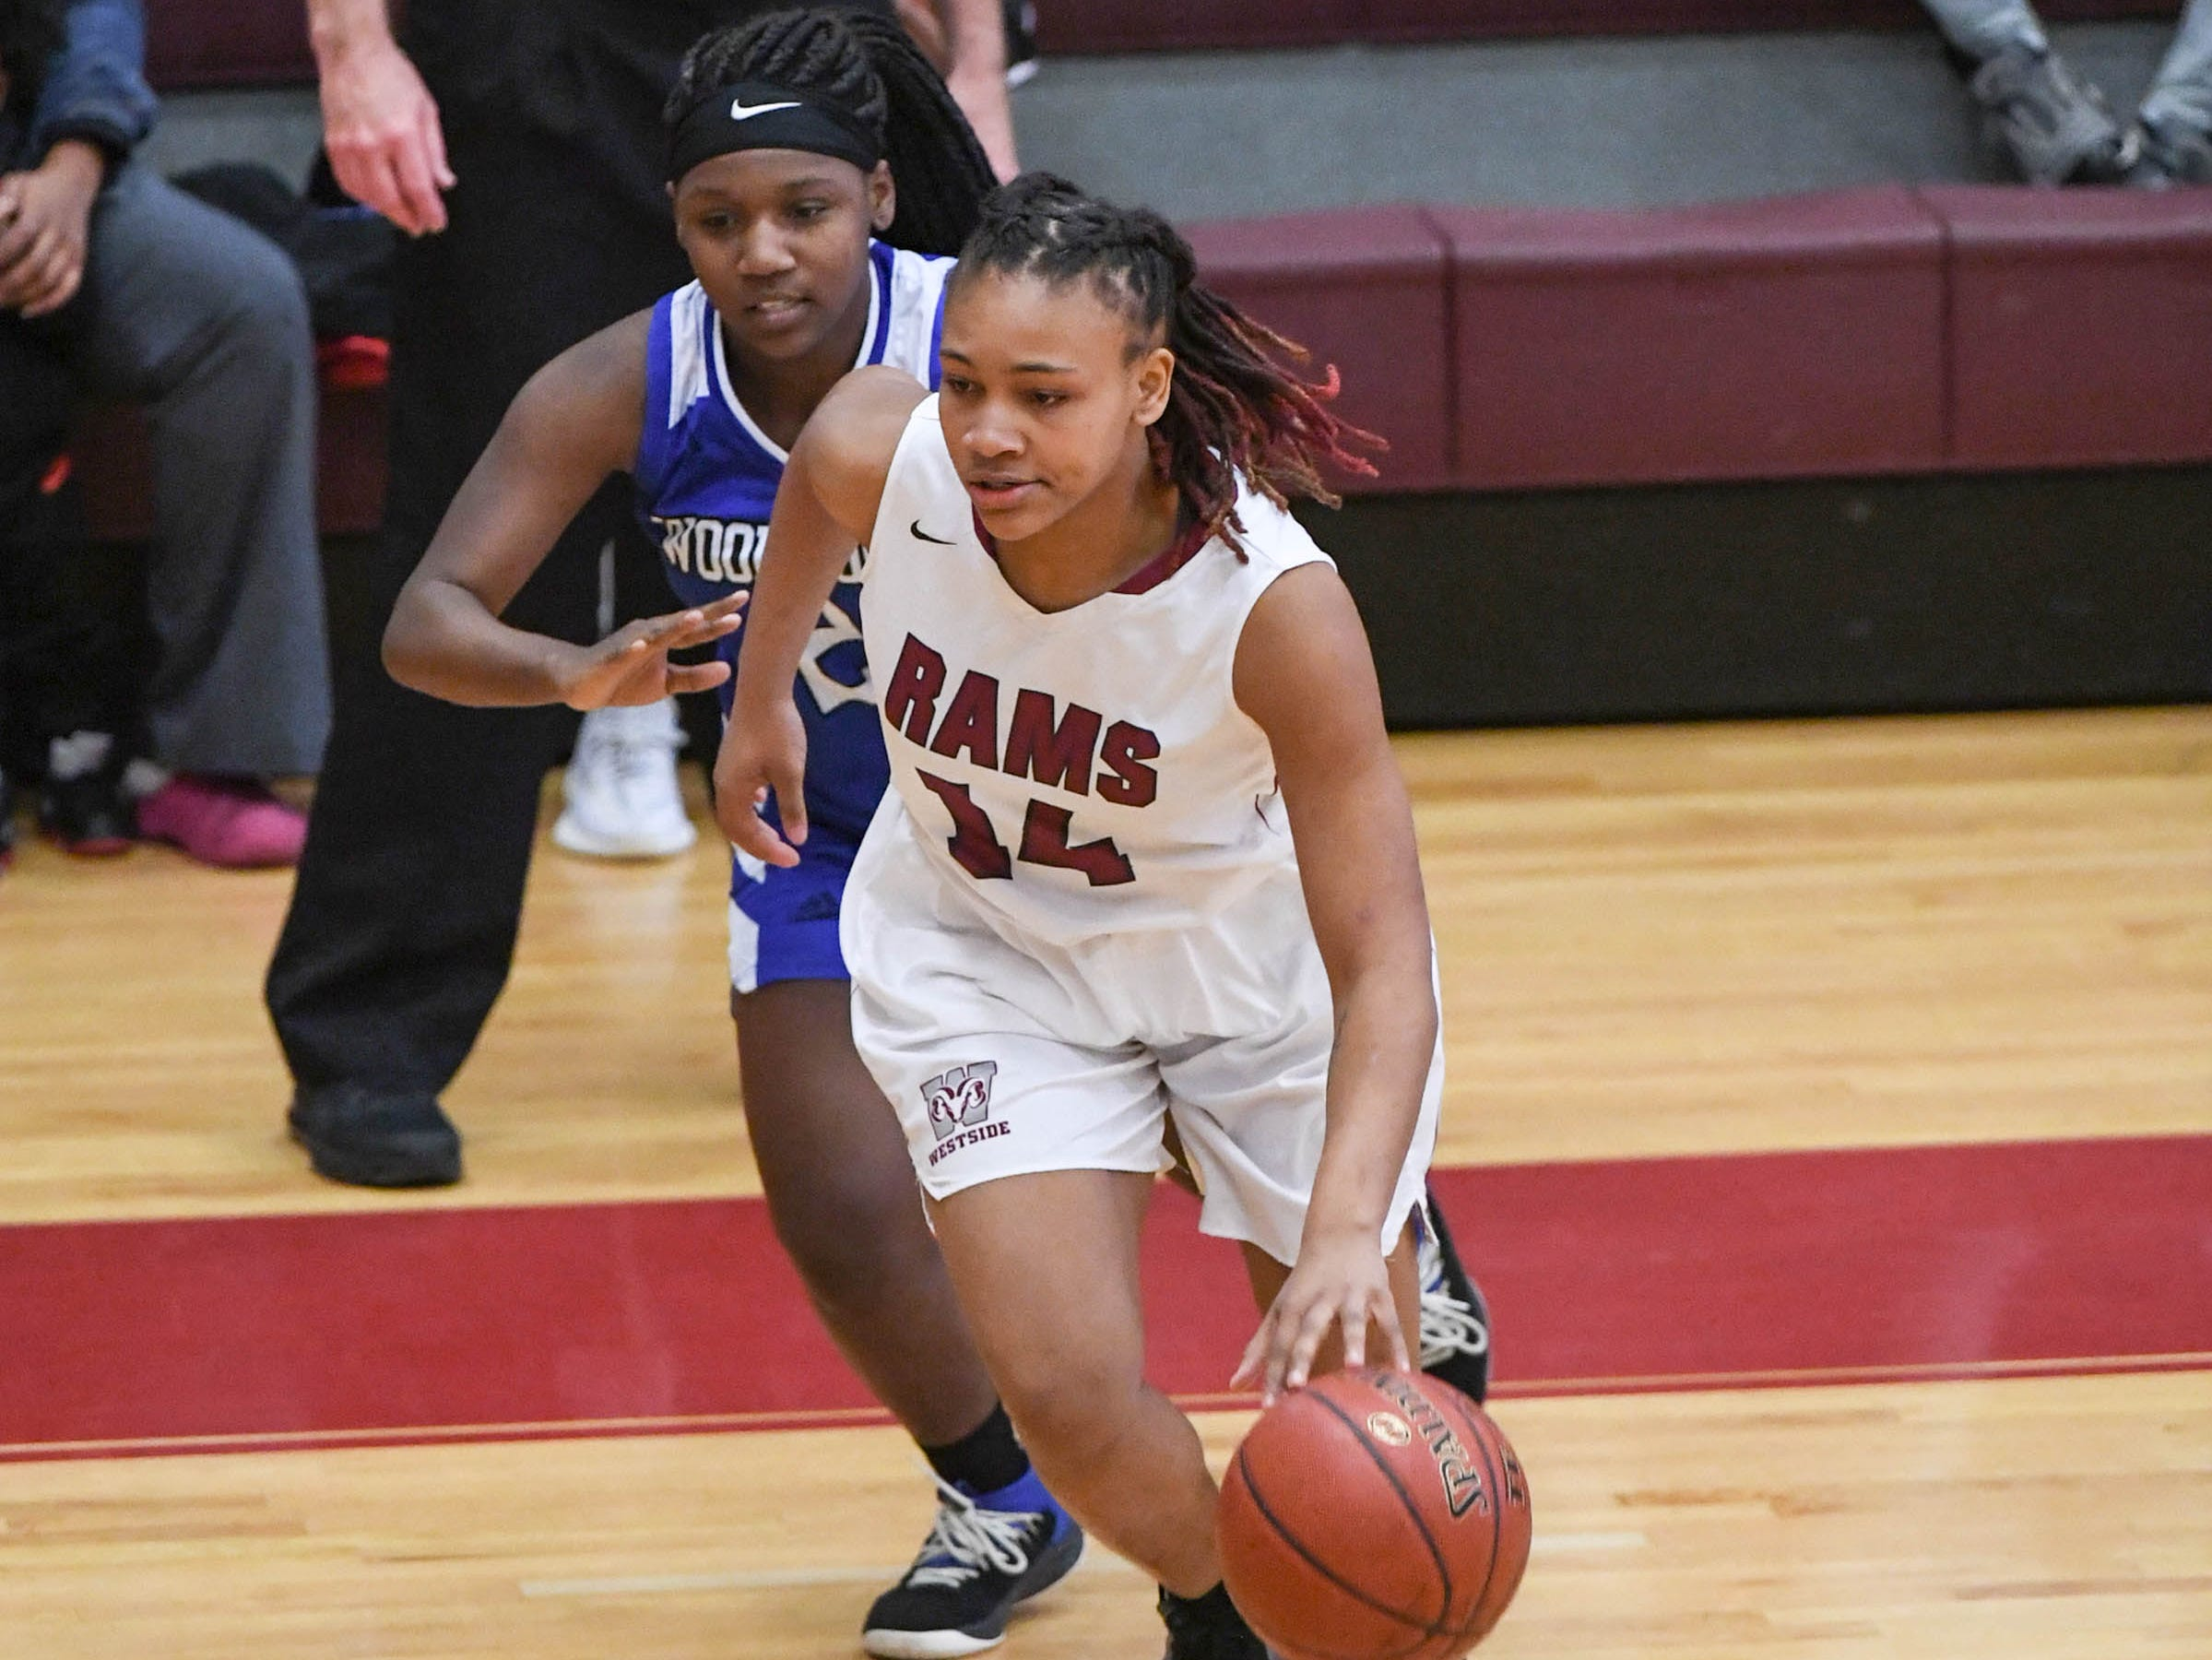 Westside junior Tatyana Lewis(14) dribbles around Woodmont junior Jordan Hagood(4) during the first quarter at Westside High School in Anderson on Tuesday.